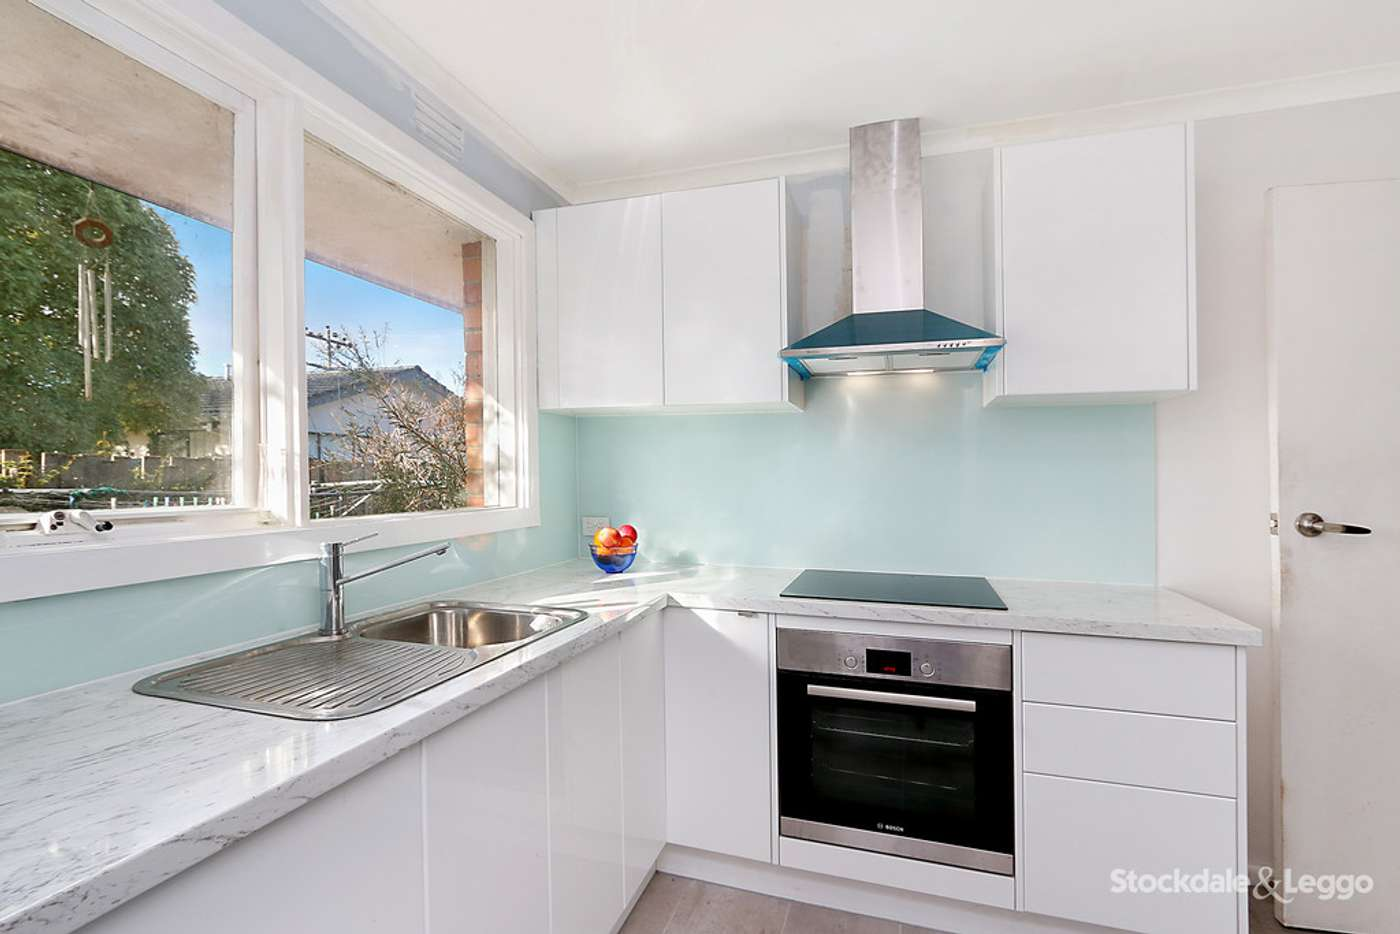 Fifth view of Homely house listing, 5/10 Spring Street, Hastings VIC 3915